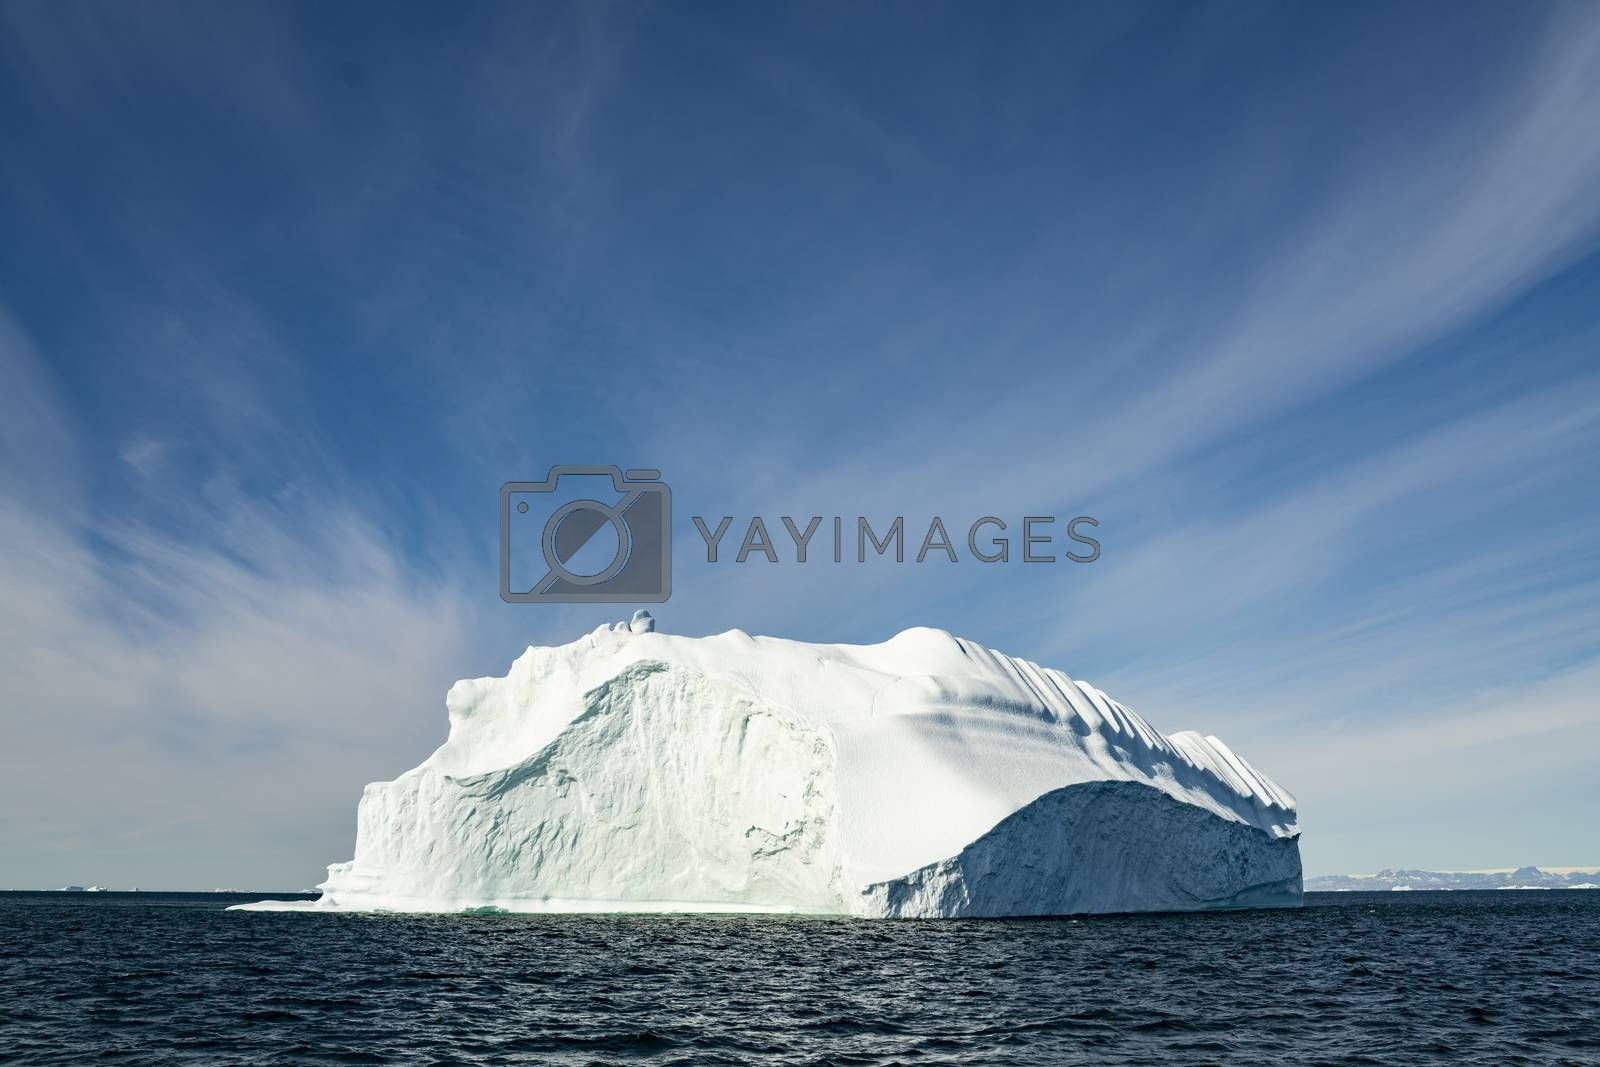 Iceberg from glacier in arctic nature landscape on Greenland. Icebergs in Ilulissat icefjord. Affected by climate change and global warming.